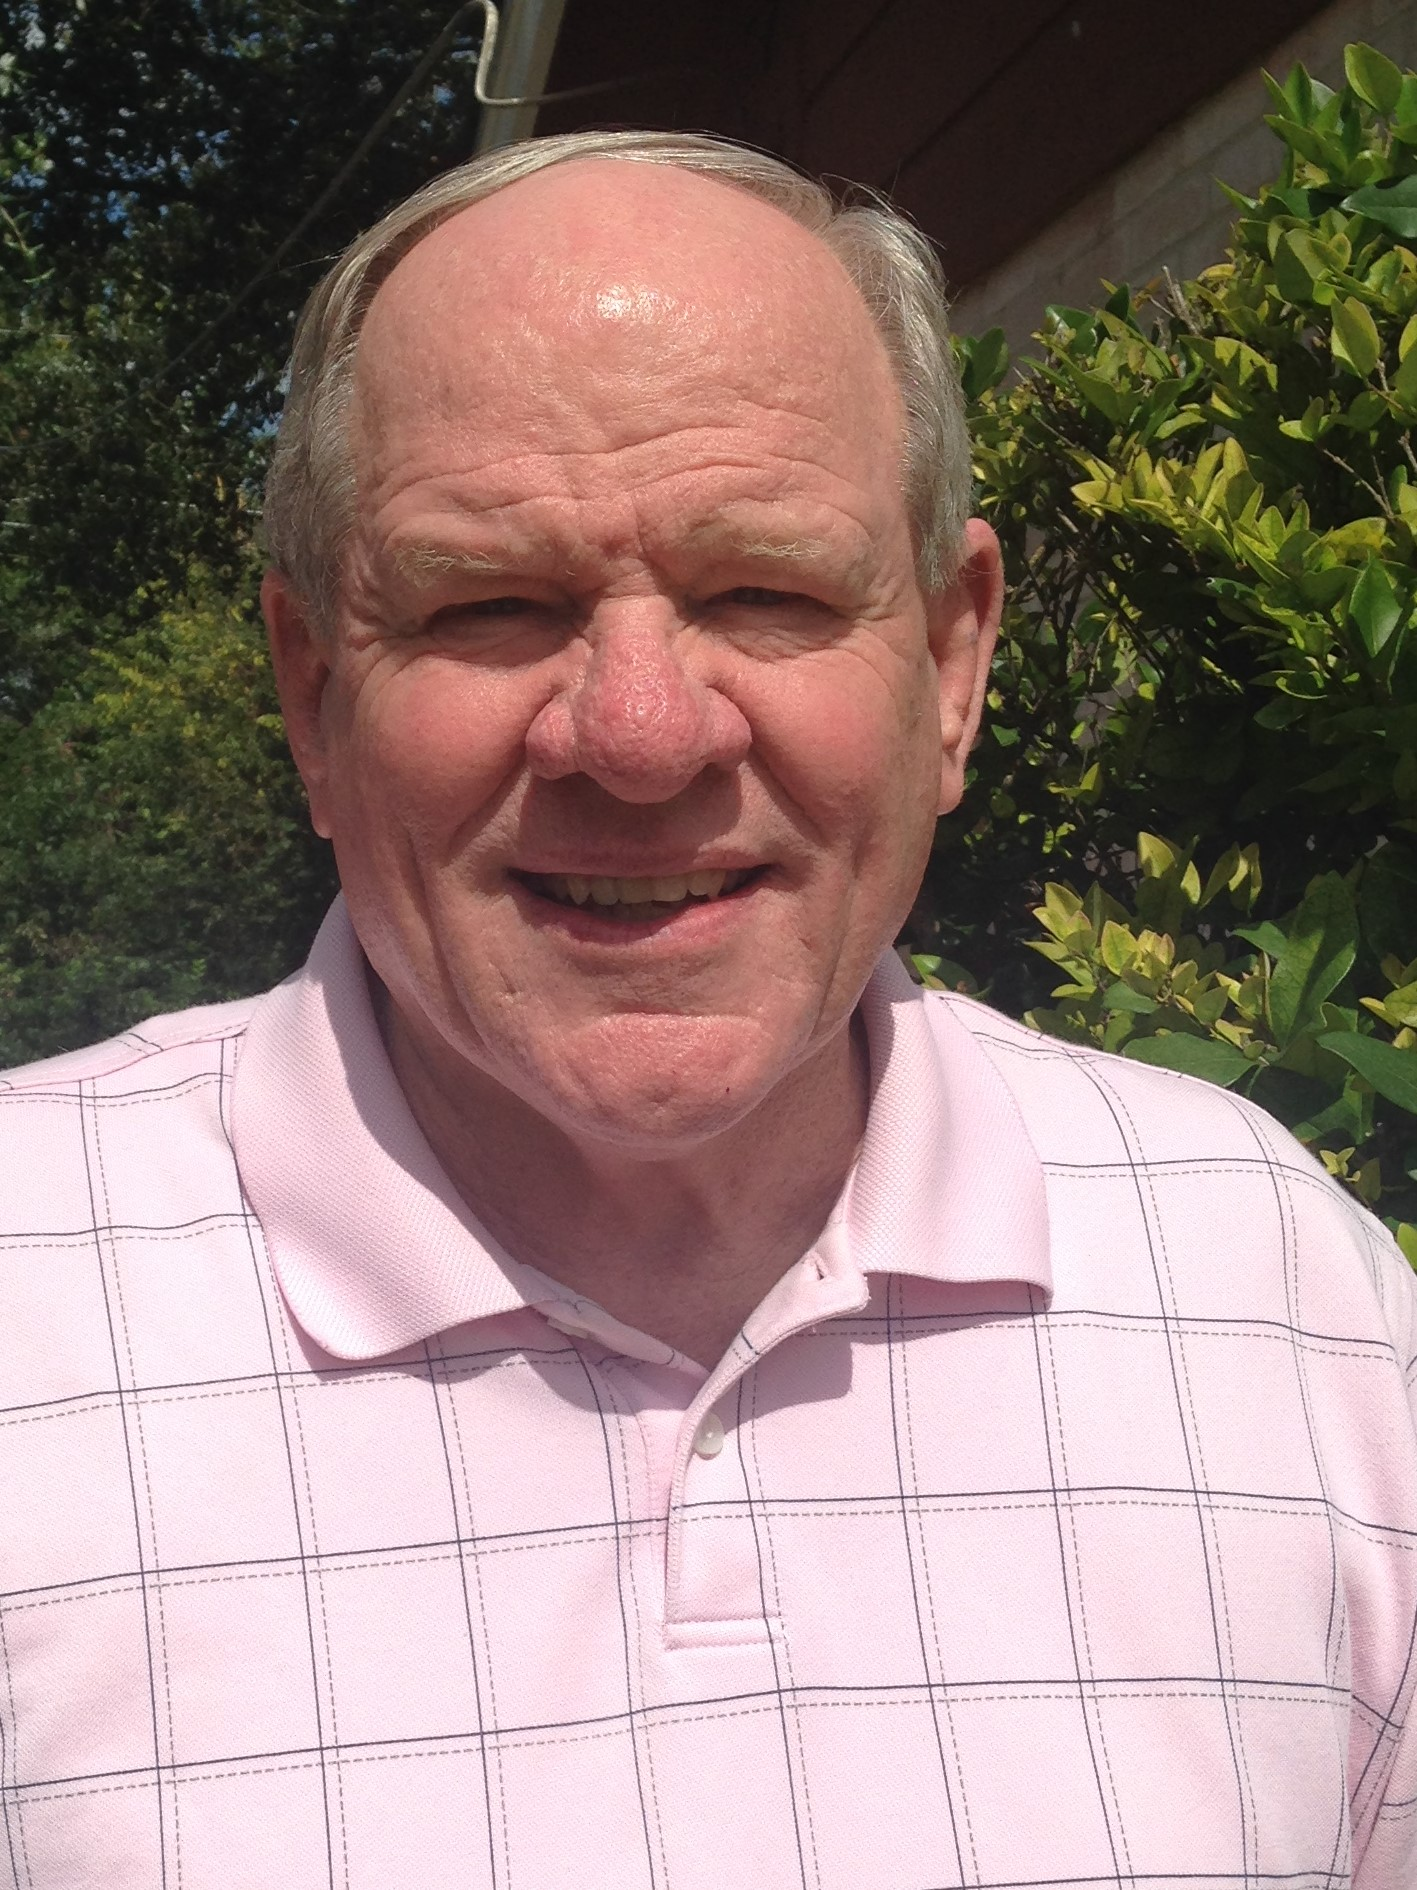 Chris Maguire - Board Treasurer: One of the original Founders of Children in Need in 2002, Chris is a retired banker. Chris was on the ACTS team and got involved at the inception of the organiztion.